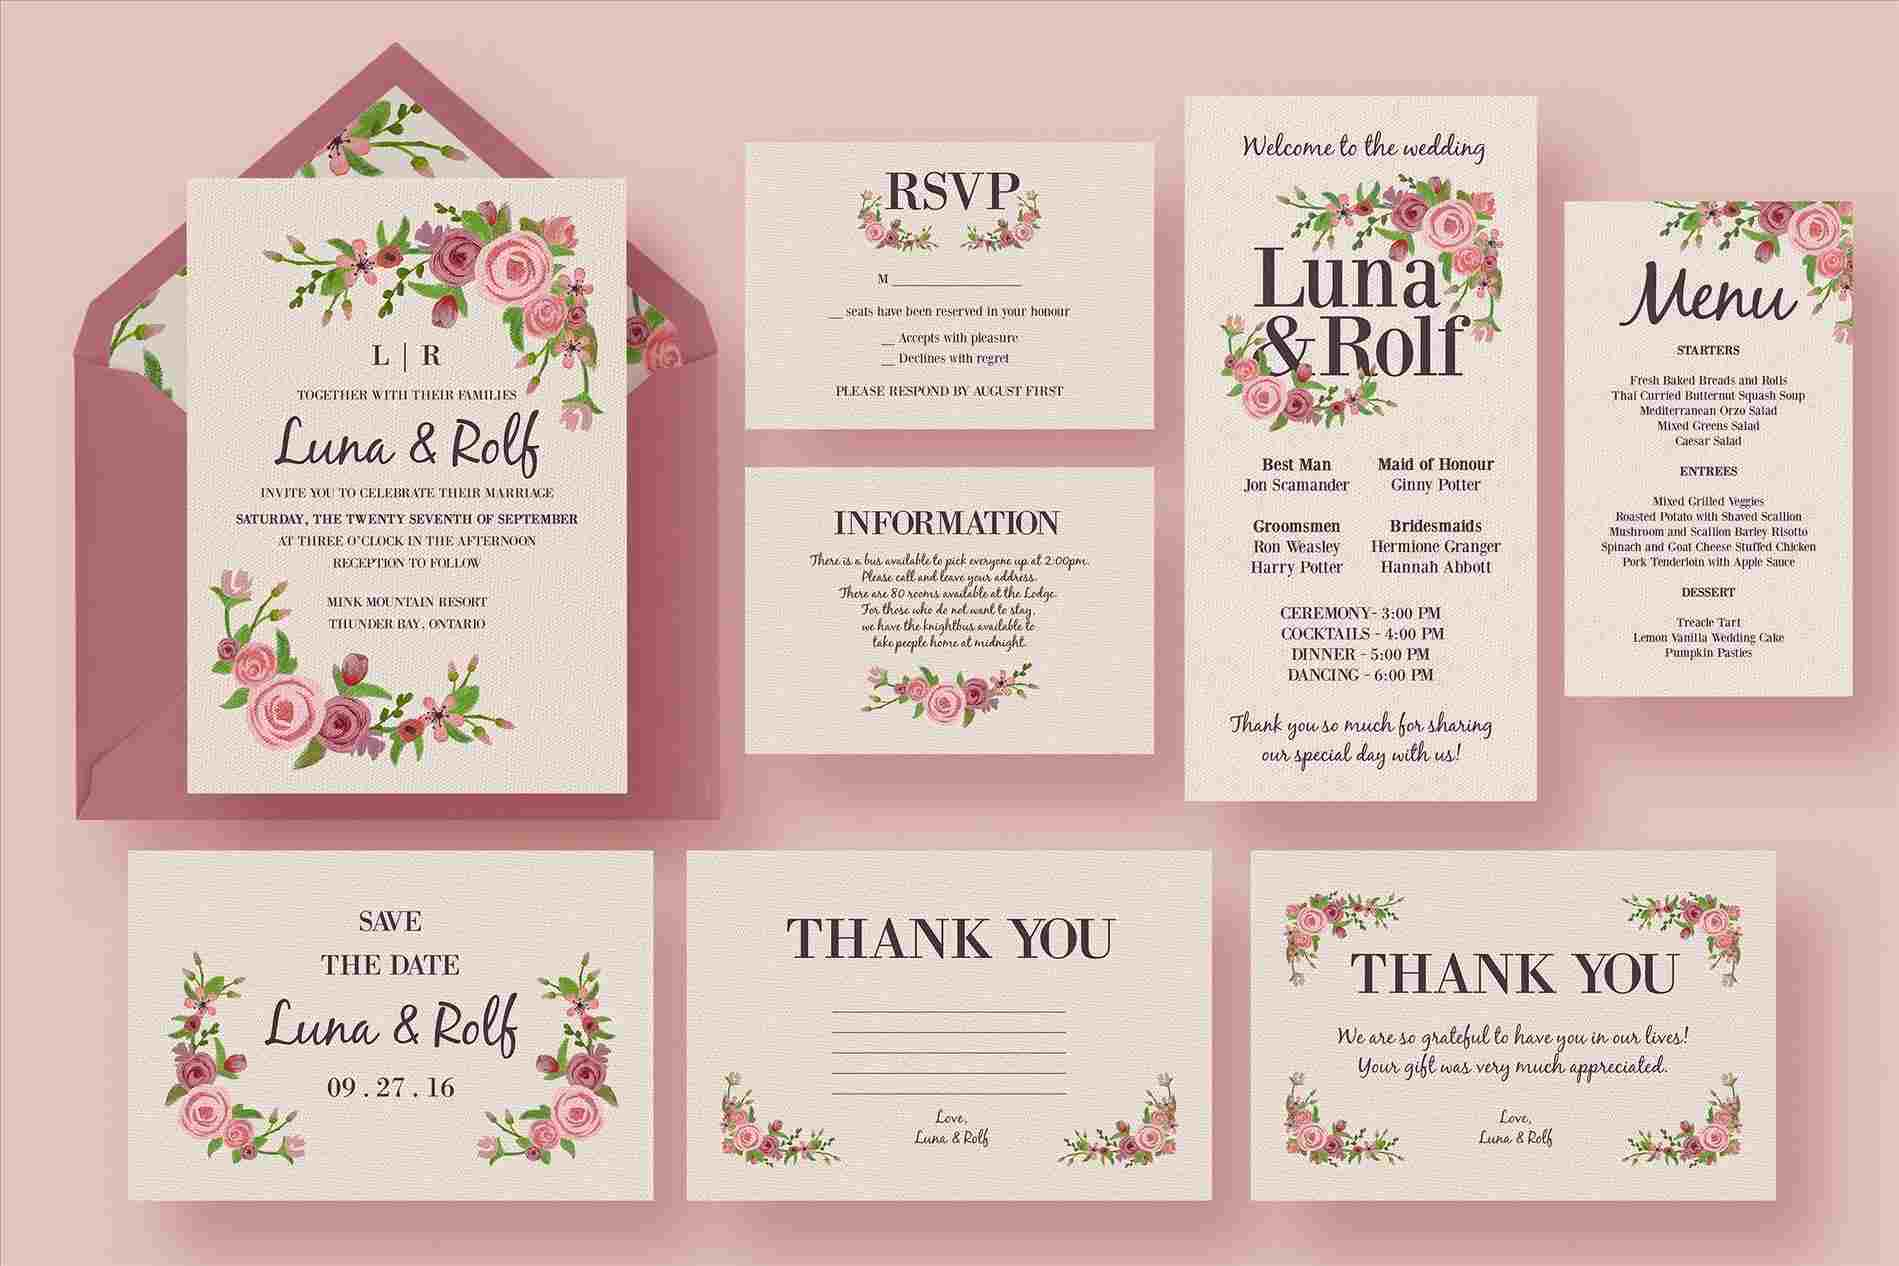 Wedding Invitation Makers: Wedding Invitation Maker For A Rhourideascom Sle Of In The